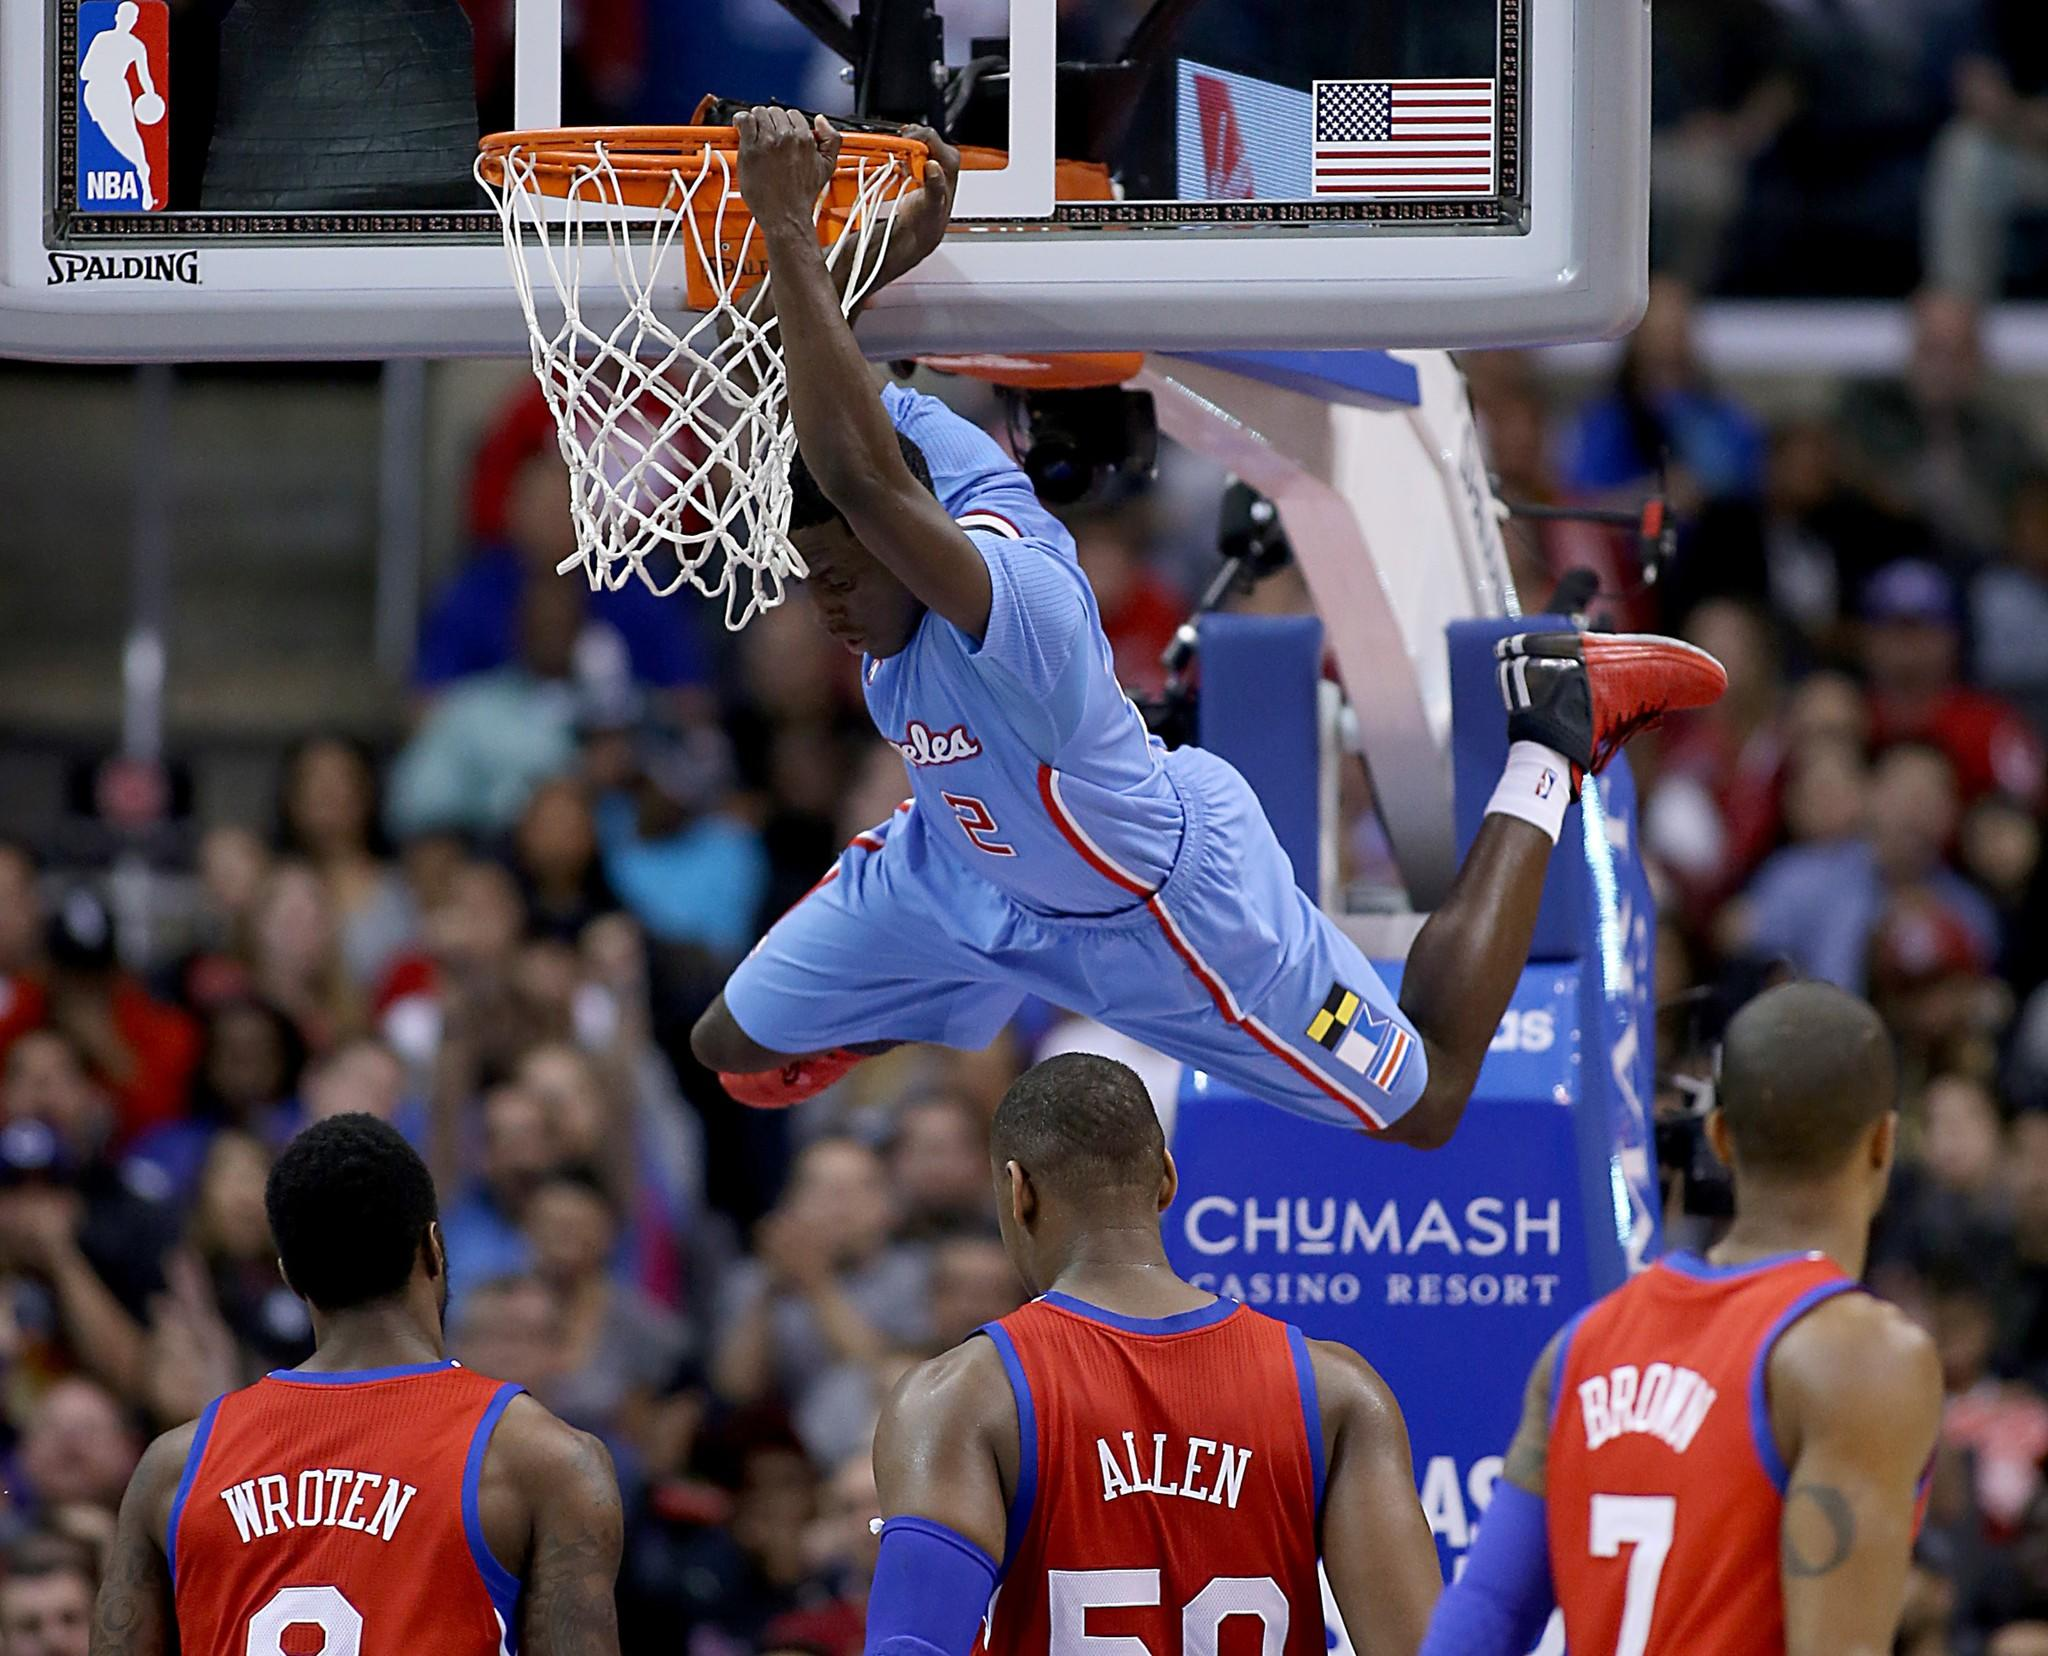 Darren Collinson hangs on the rim after cutting through the Philadelphia 76ers defense for a dunk during the Clippers' 123-78 victory at Staples Center.